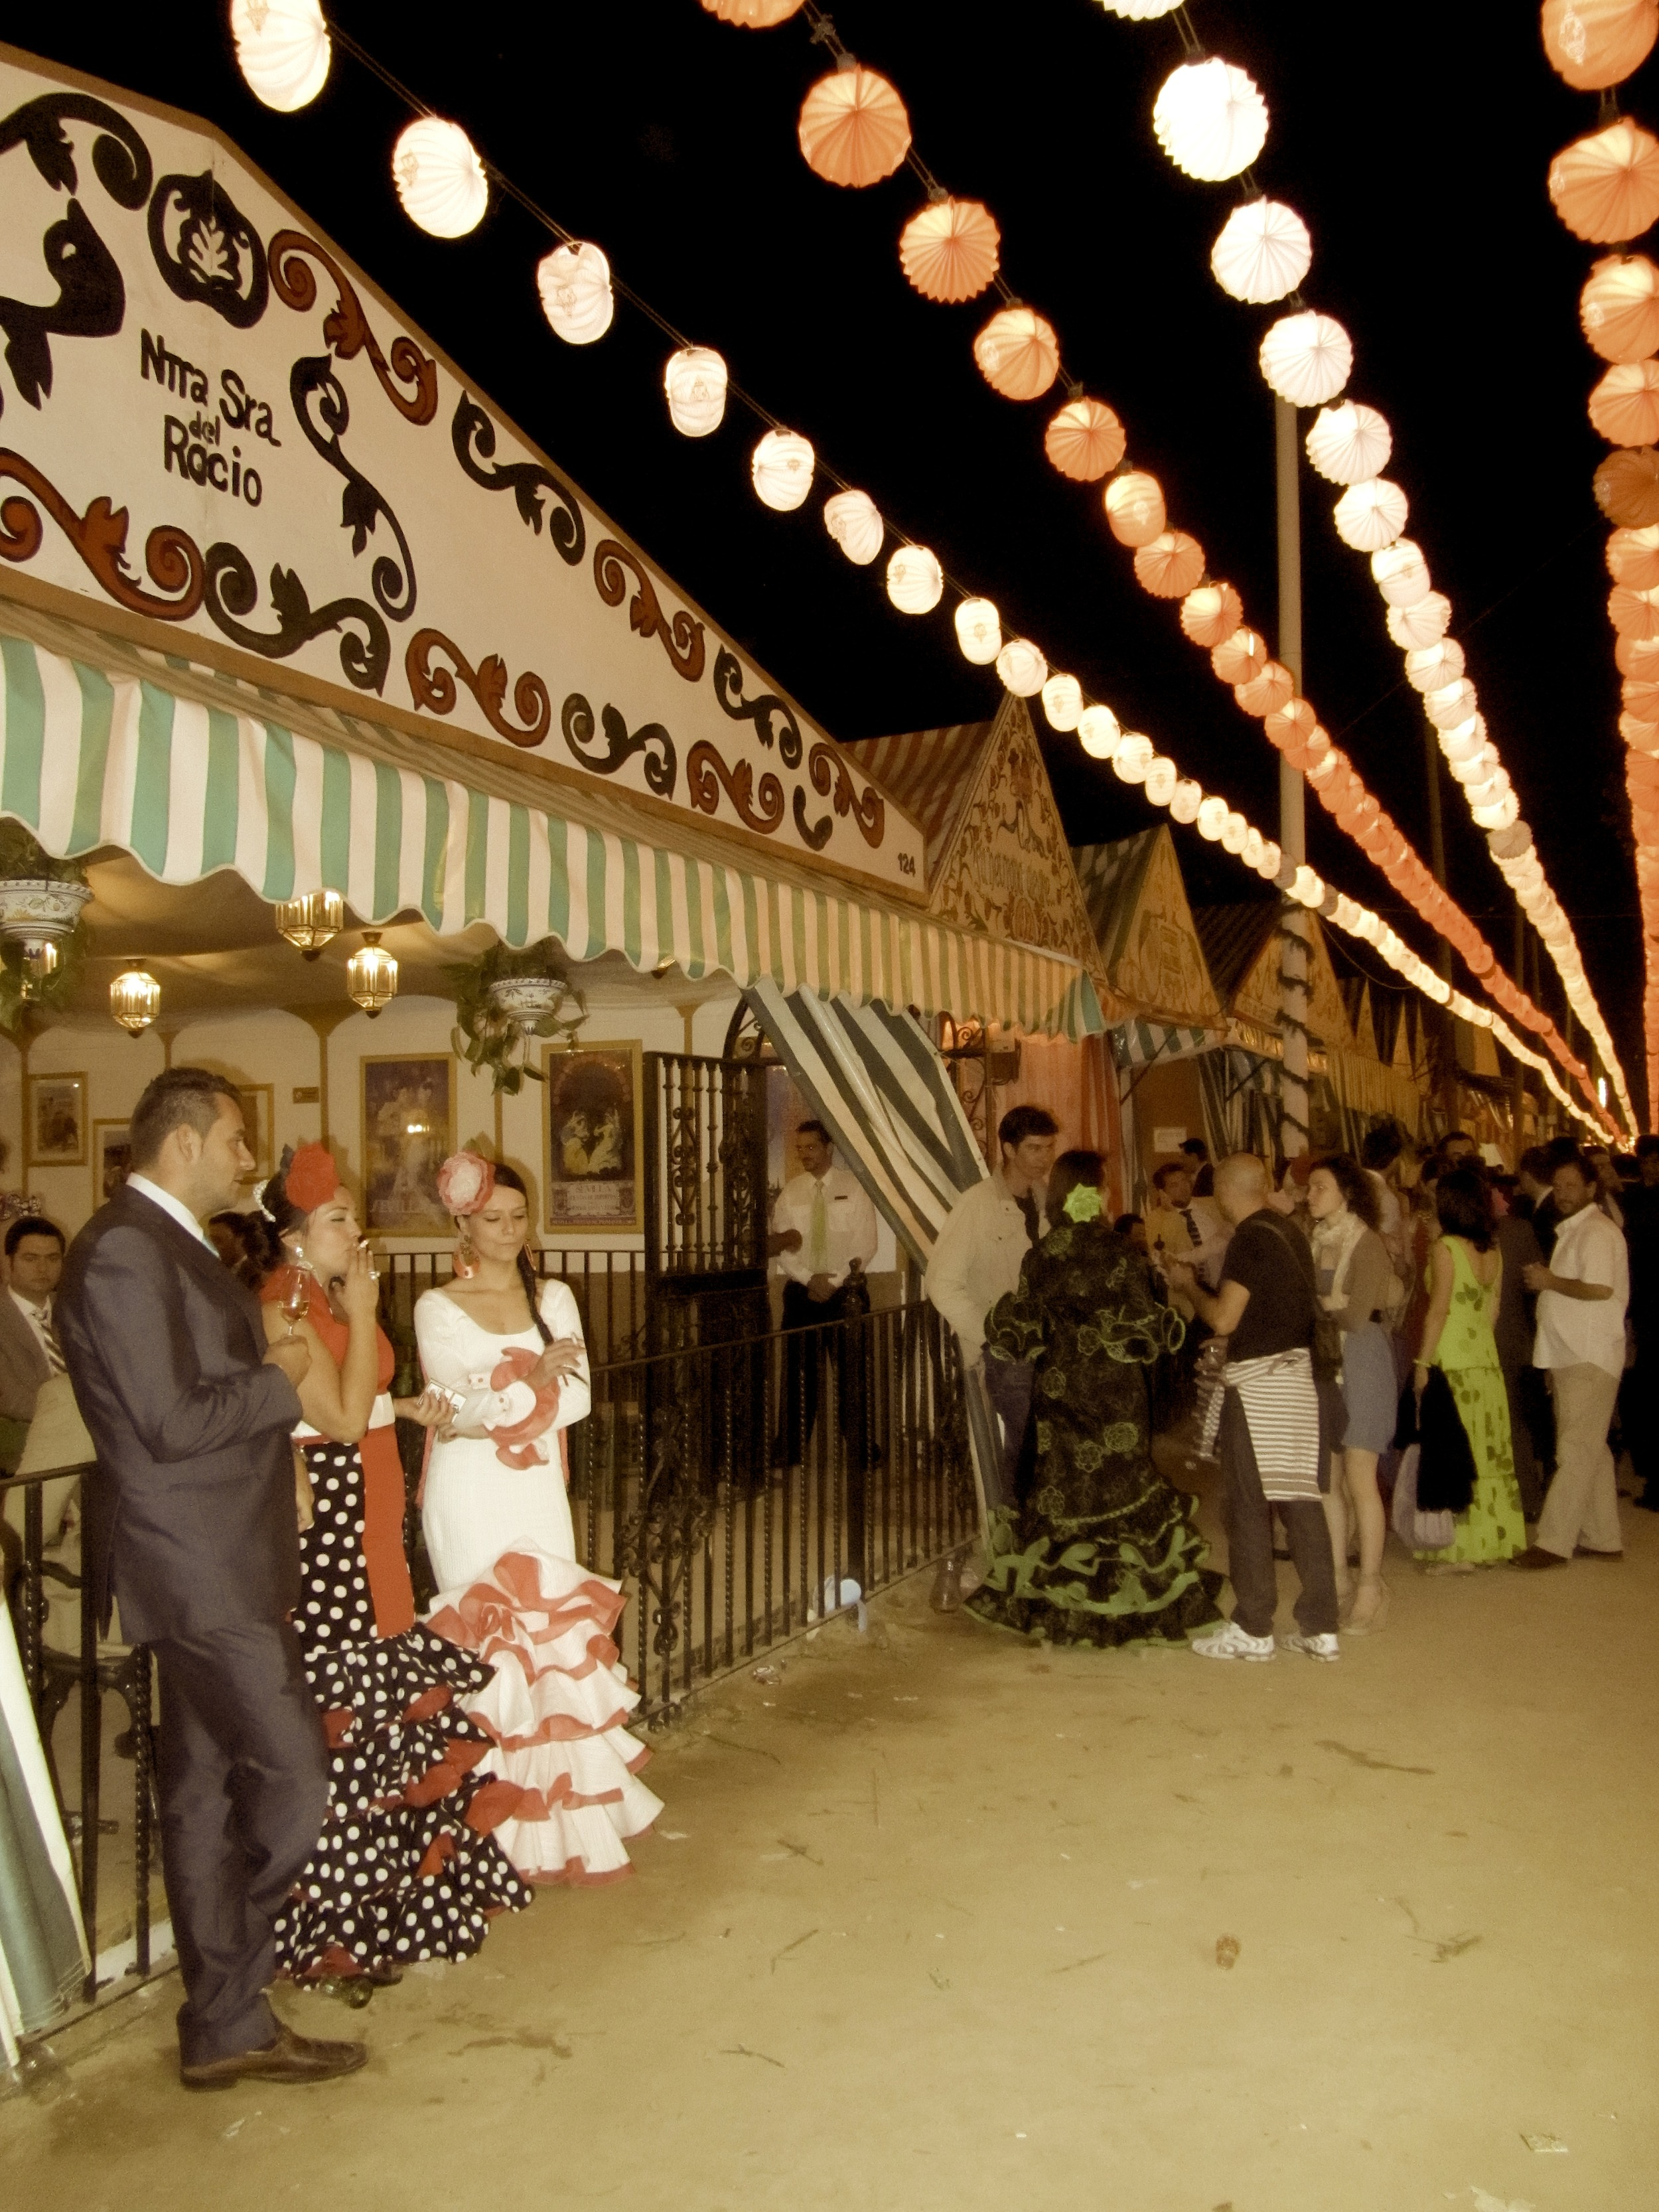 The Feria fairgrounds, with a line of casetas, where the real parties take place